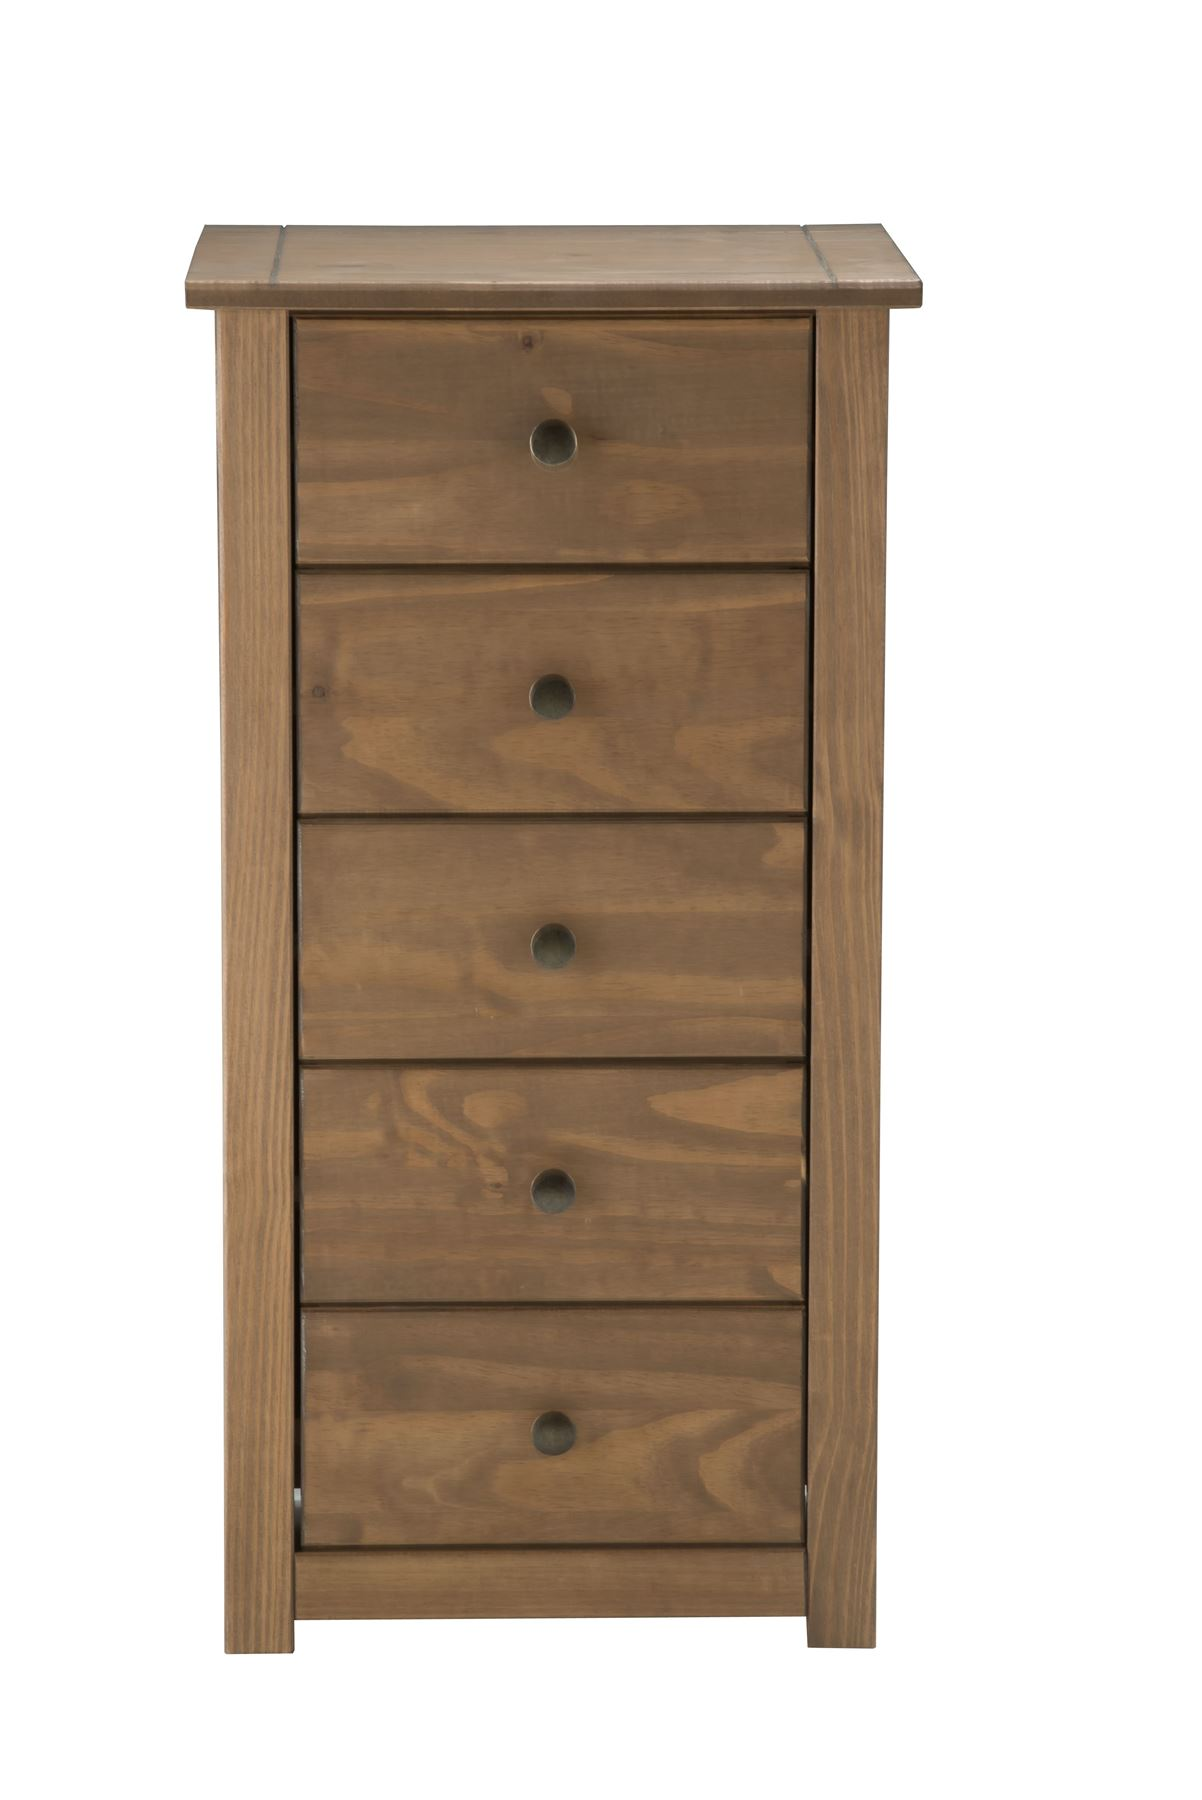 Birlea Santiago 5 Drawer Chest Drawers Corona Mexican Pine Solid Wood Furniture Ebay